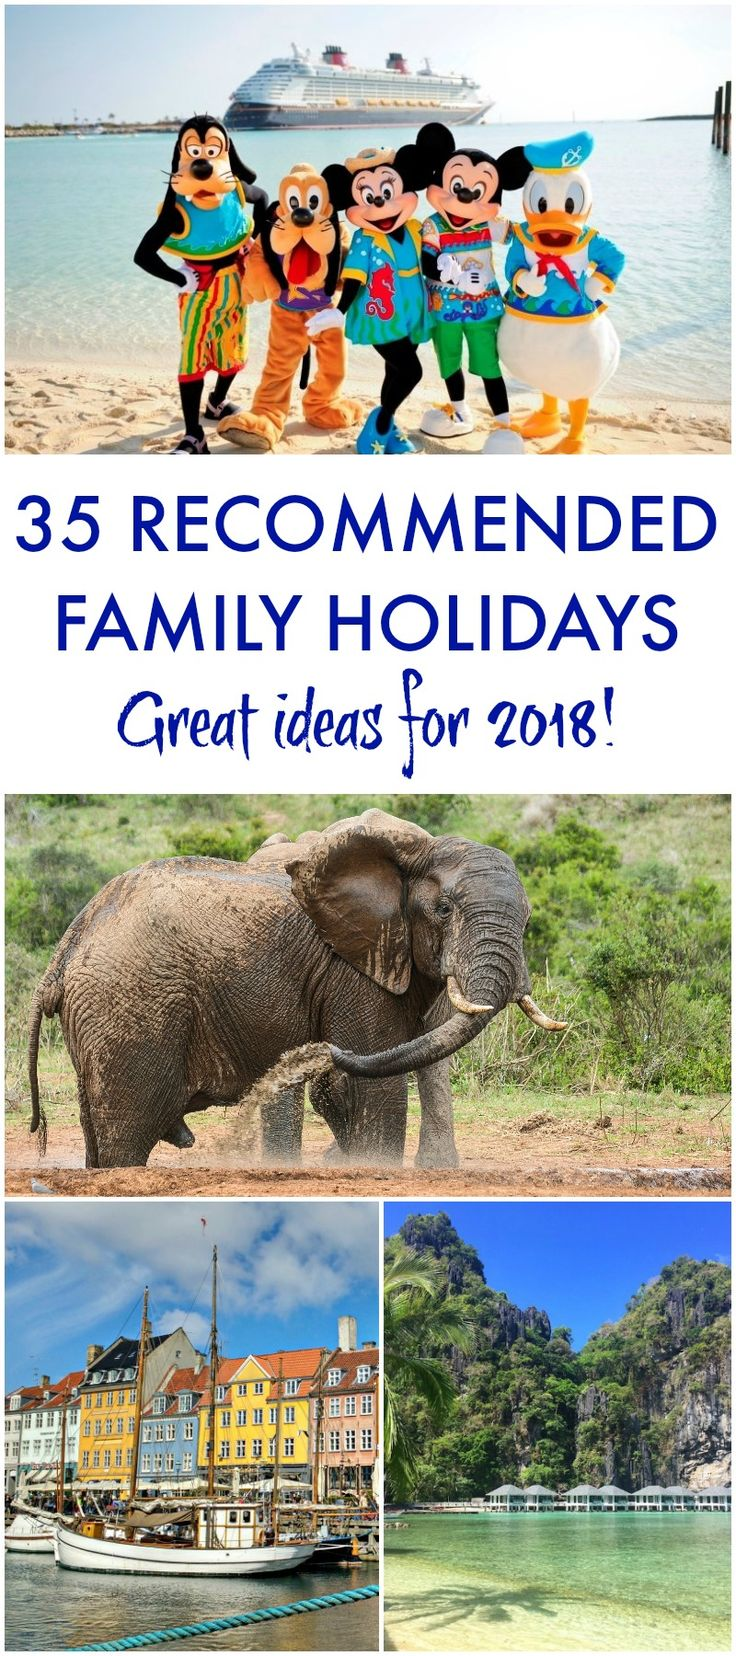 I've asked 35 world leading family travel bloggers to share their favourite family holiday of 2017.  The following 35 recommendations include 10 tried and tested family holidays in the UK from the islands of Scotland down to the Isles of Scilly.  Scroll down further to be inspired by family holidays in Europe and the rest of the world including a road trip around Iceland, trekking with gorillas in Rwanda, a Sahara desert adventure and a magical visit to Disneyland California!